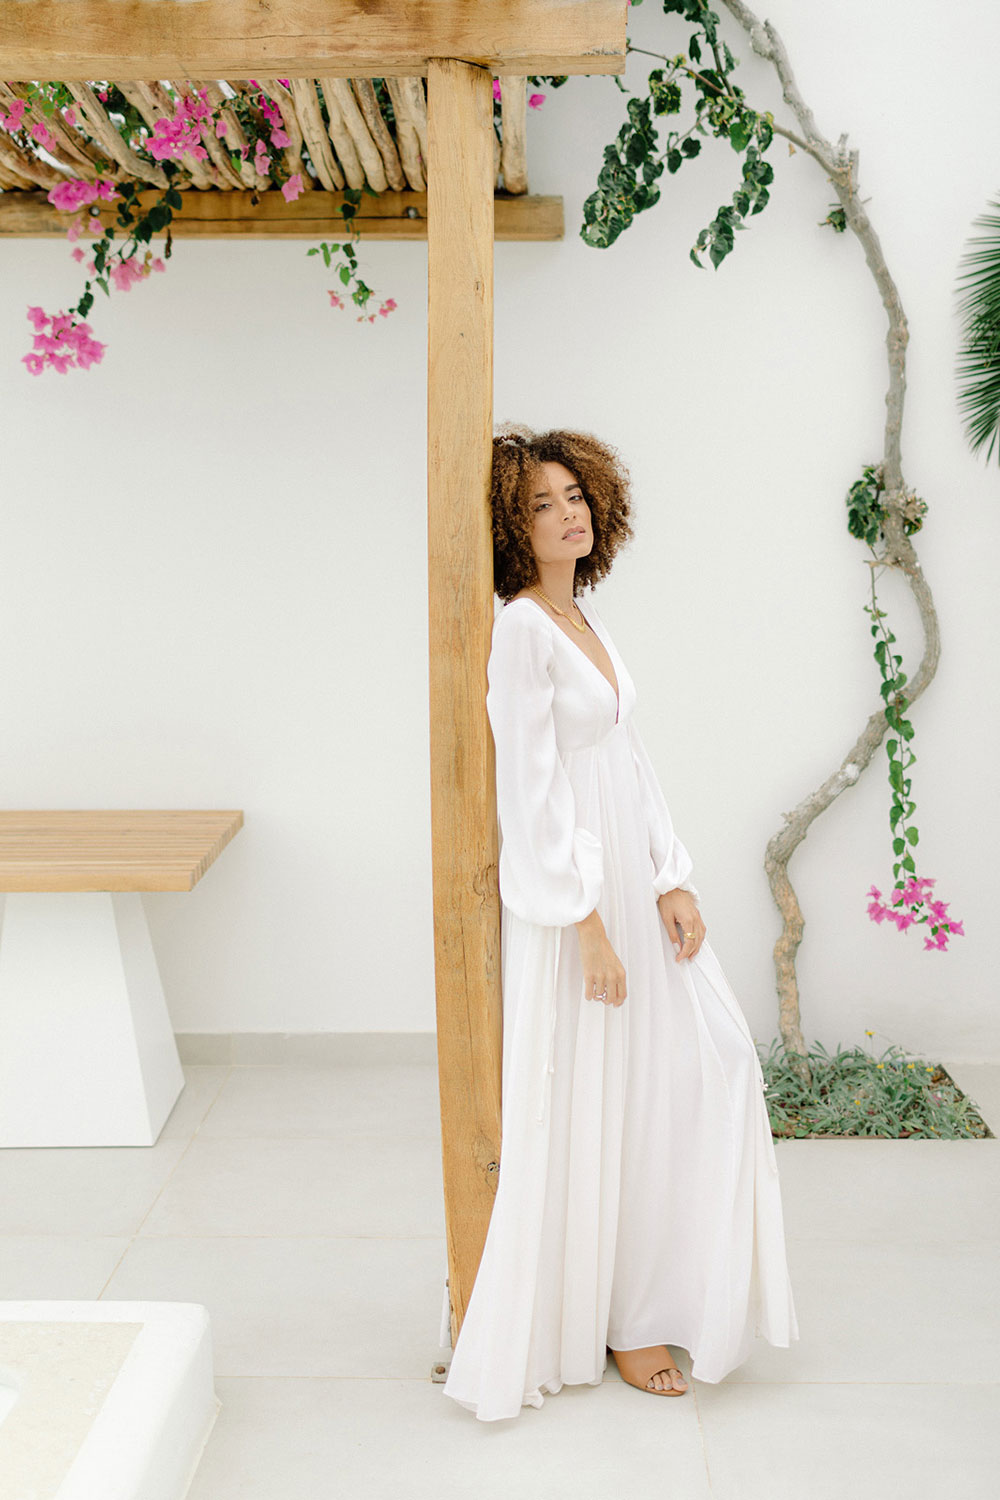 The first wedding dress was an a-line one, with a plunging neckline and long sleeves, a very modern idea